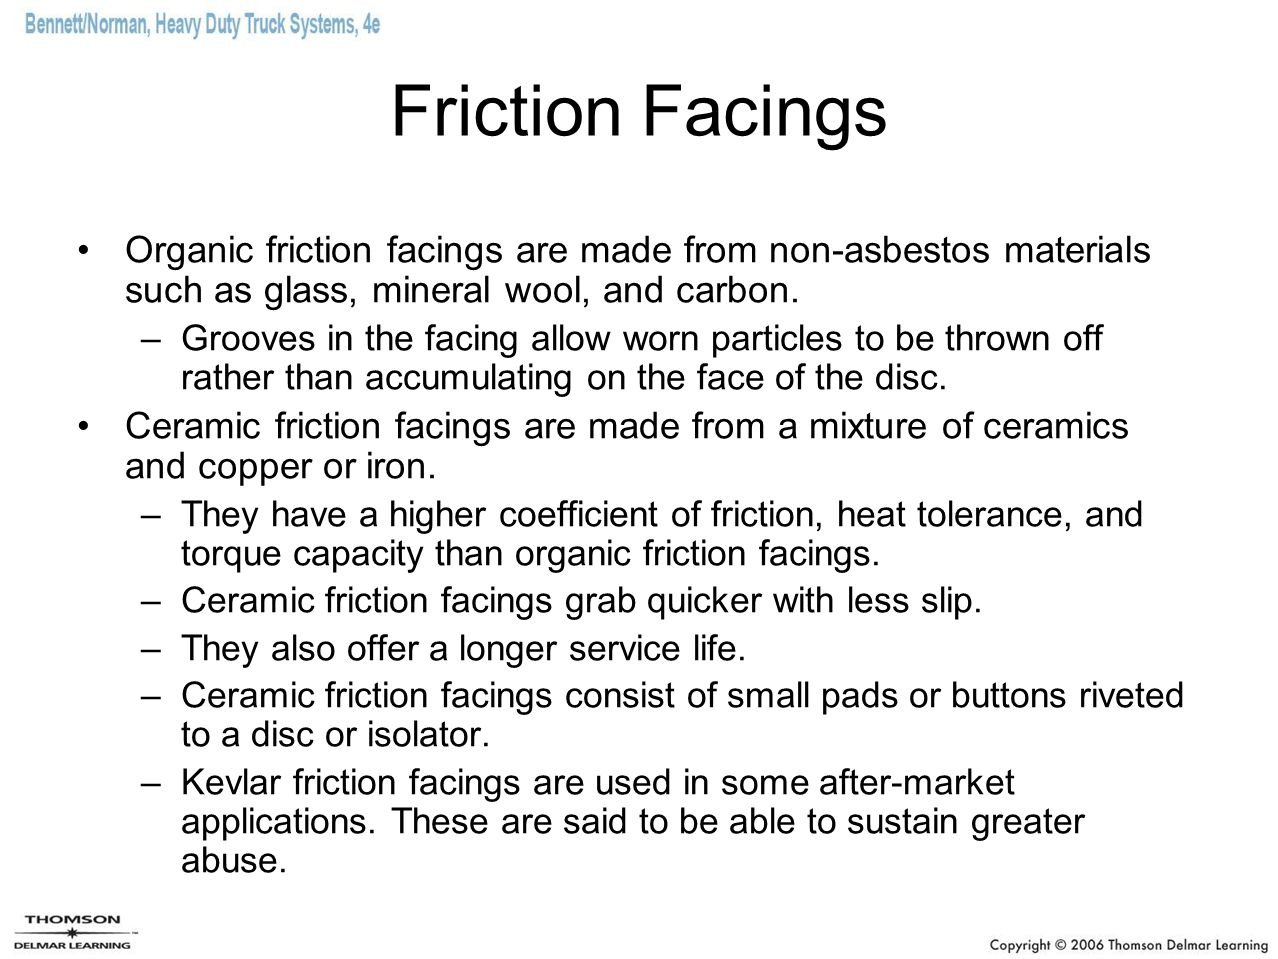 Friction Facings Organic friction facings are made from non-asbestos materials such as glass, mineral wool, and carbon.